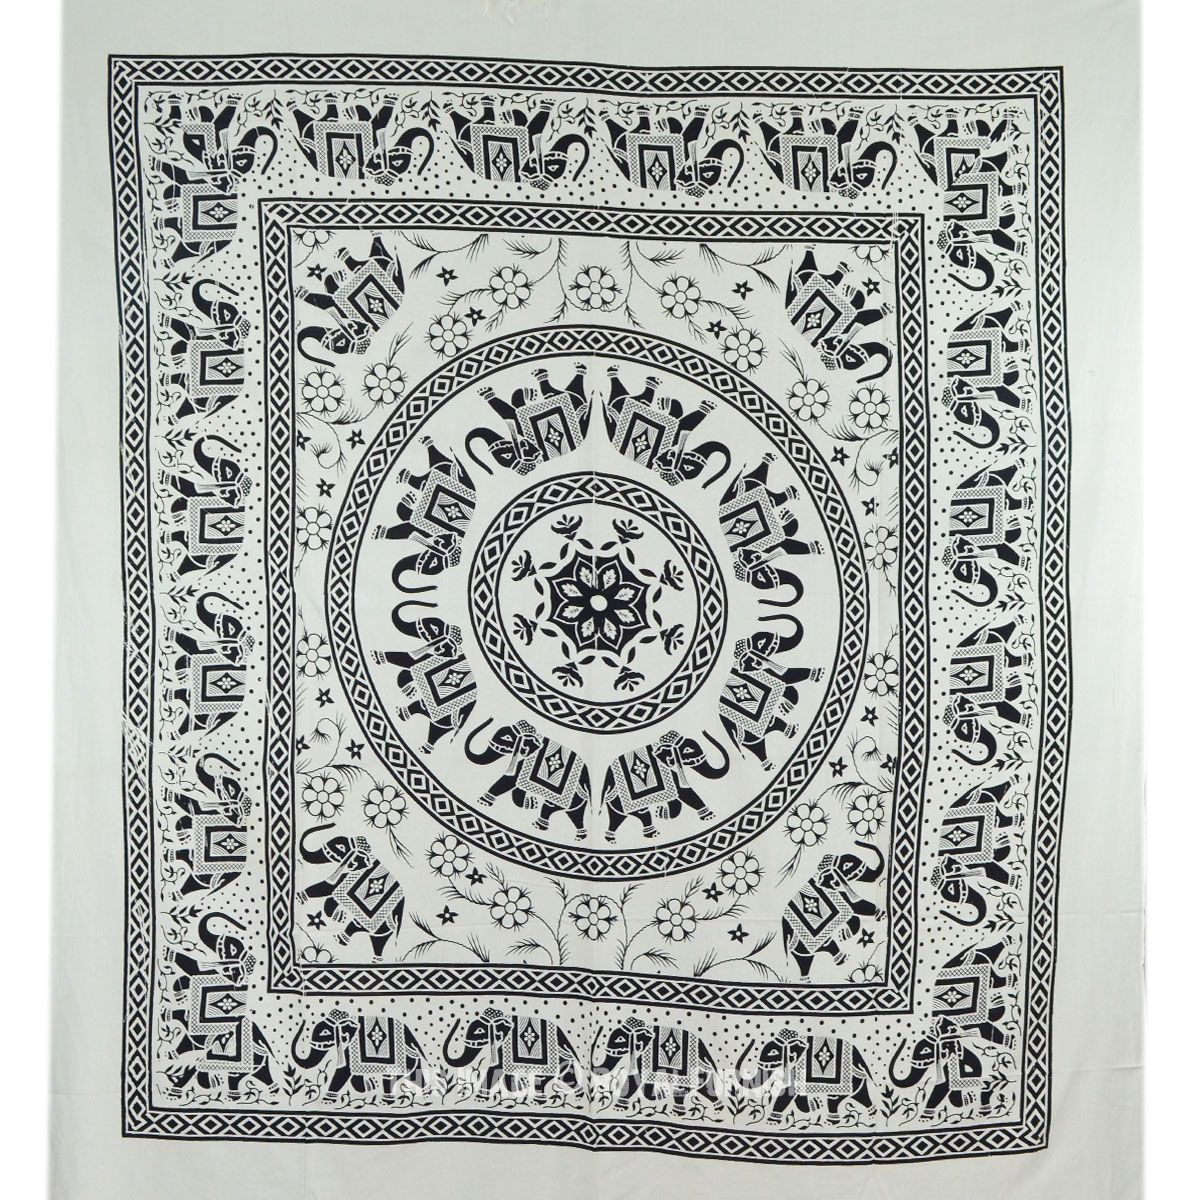 Blue multi elephants sun ombre mandala wall tapestry royalfurnish - Buy Black And White Elephant Mandala Tapestry Wall Hanging Bedspread Bed Cover At Discount Price